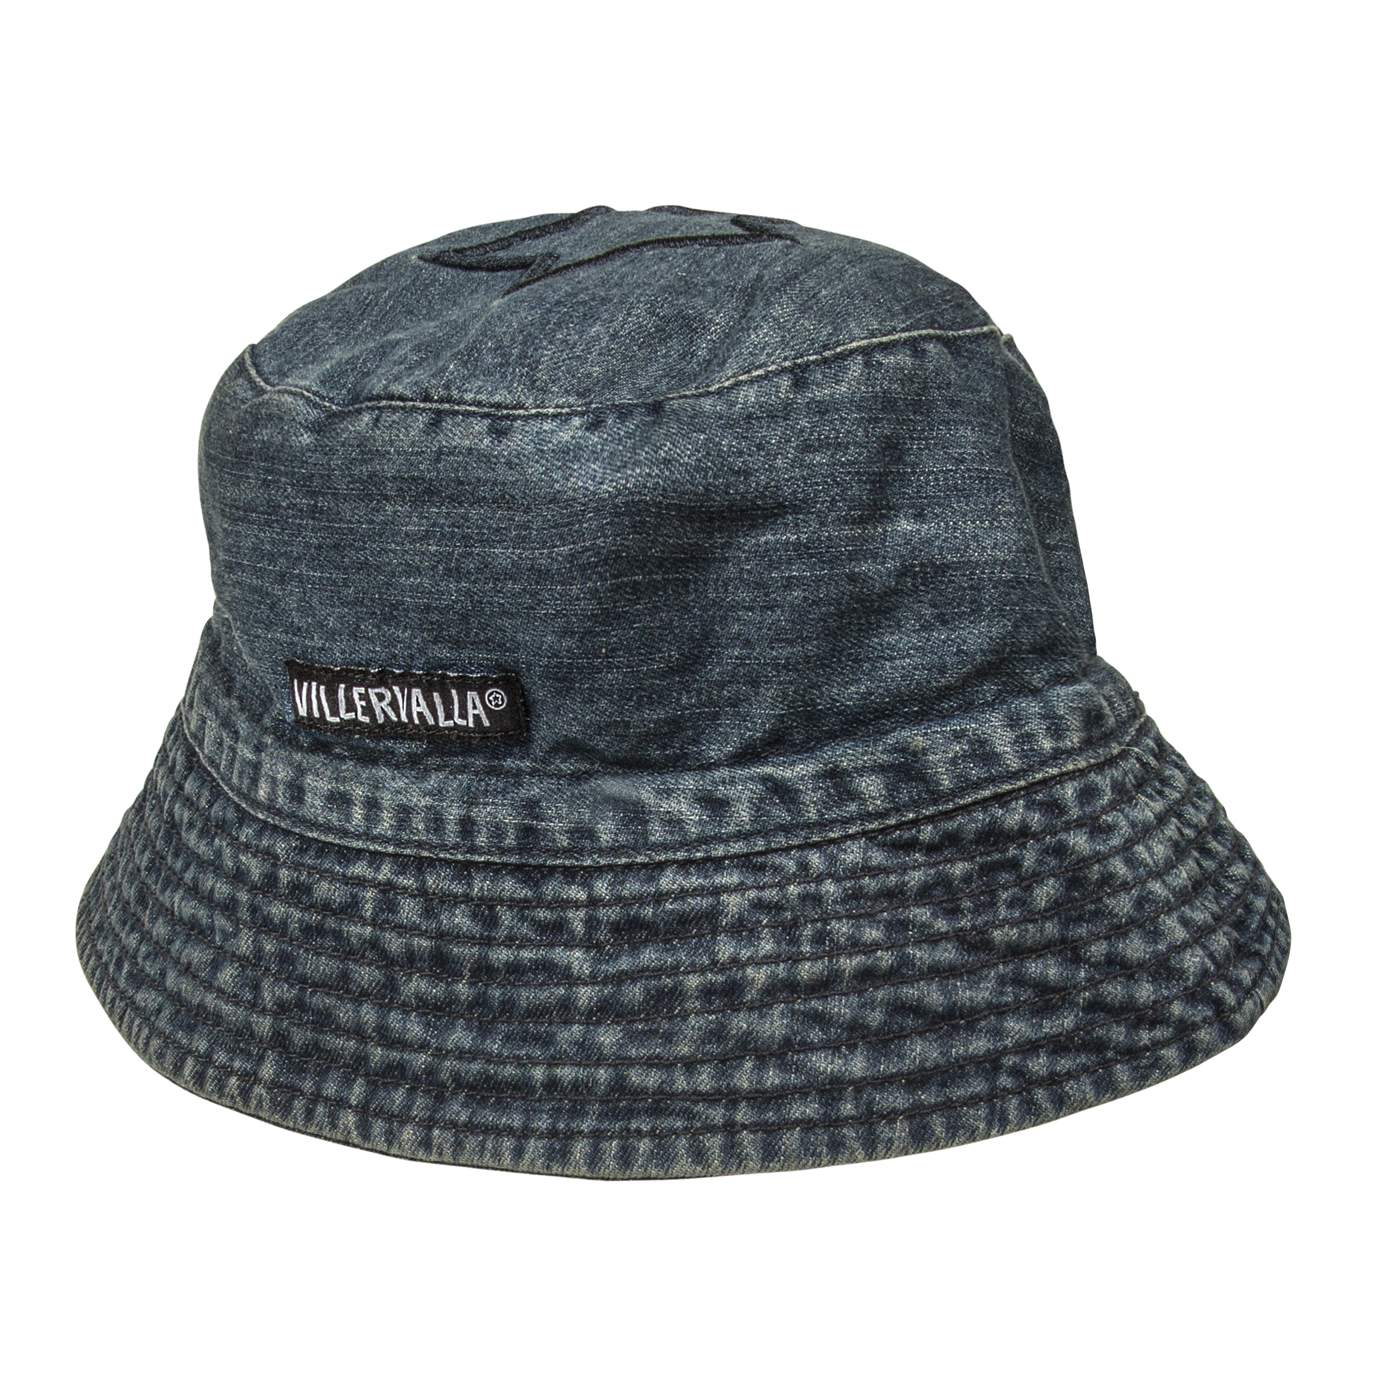 693a961460d sun hat SOFT DENIM MIDNIGHT WASH - Villervalla kids clothing